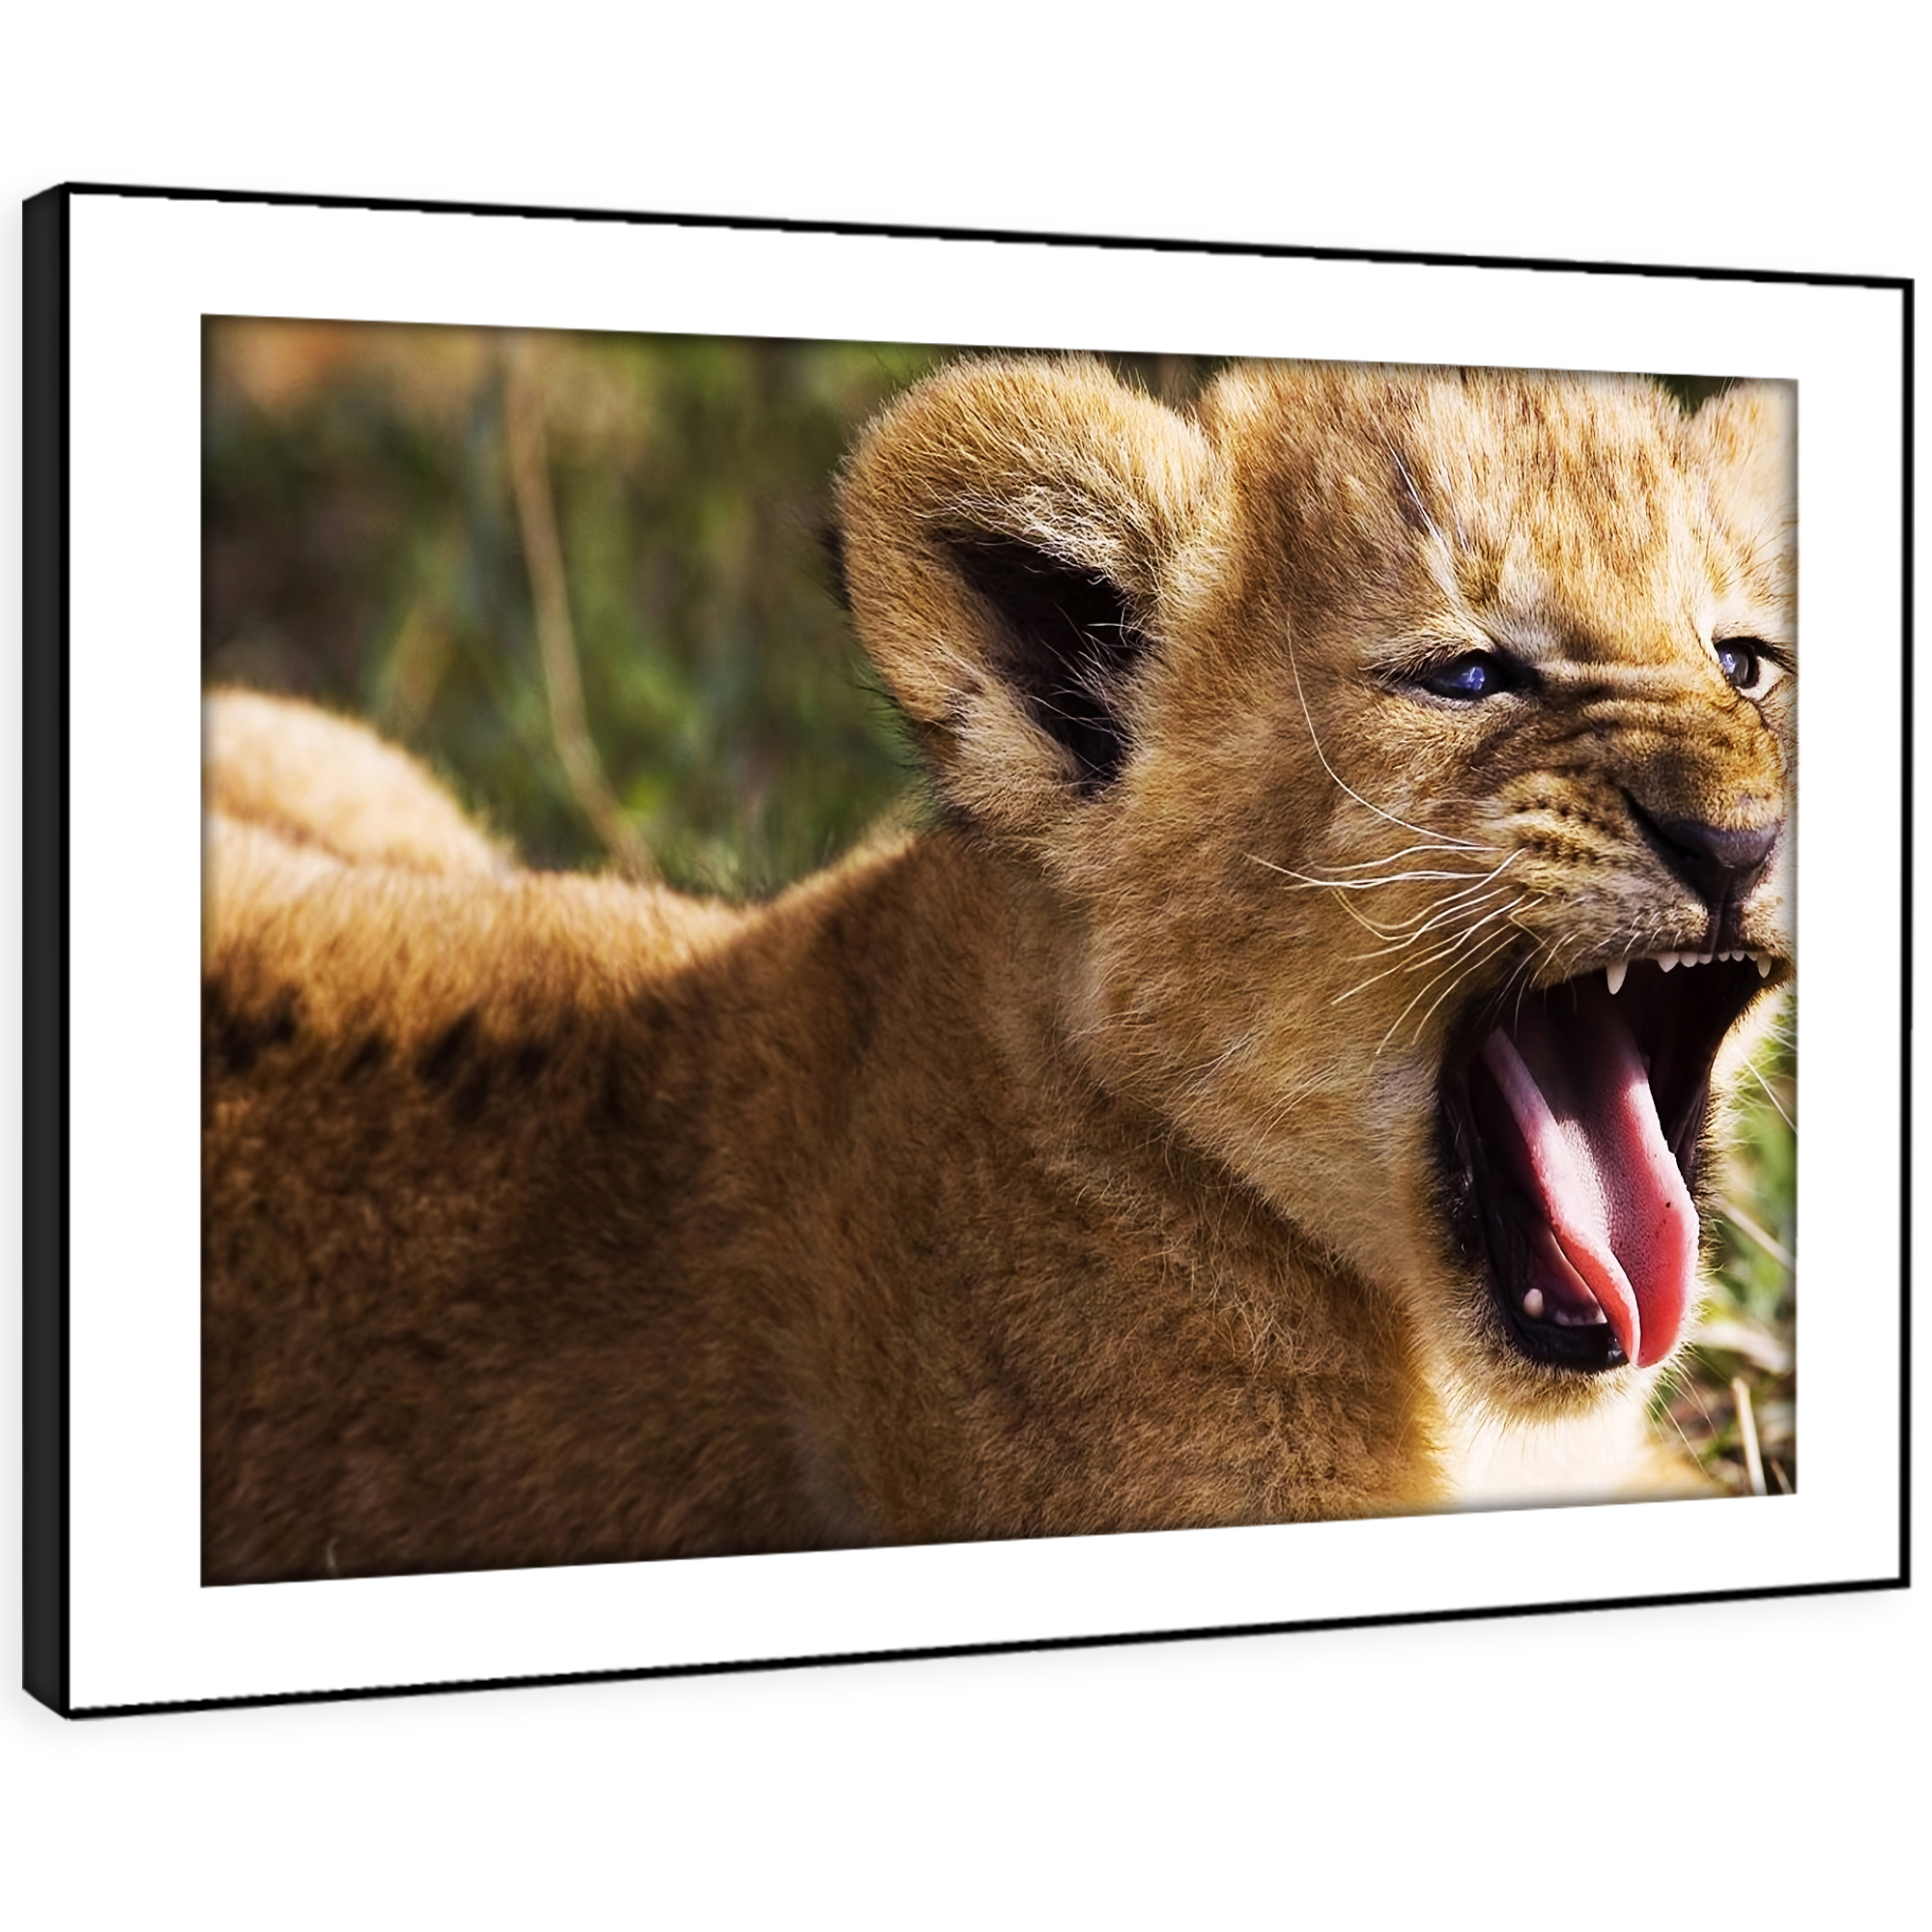 A066 braun Lion Cub Cat Orange Funky Animal Framed Wall Art Large Picture Prints